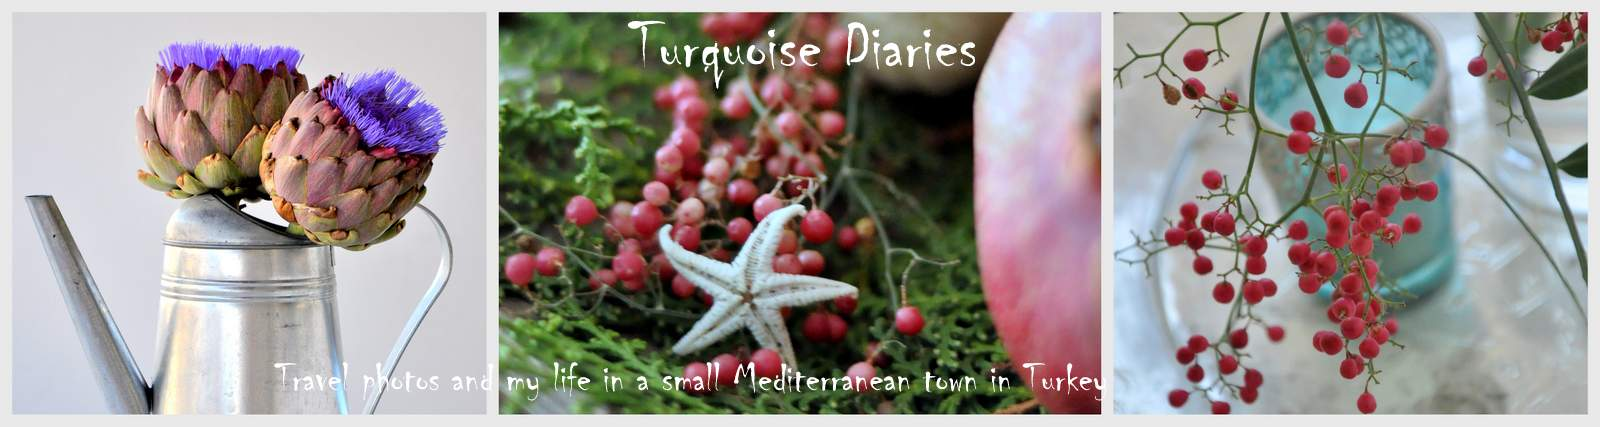 Turquoise Diaries